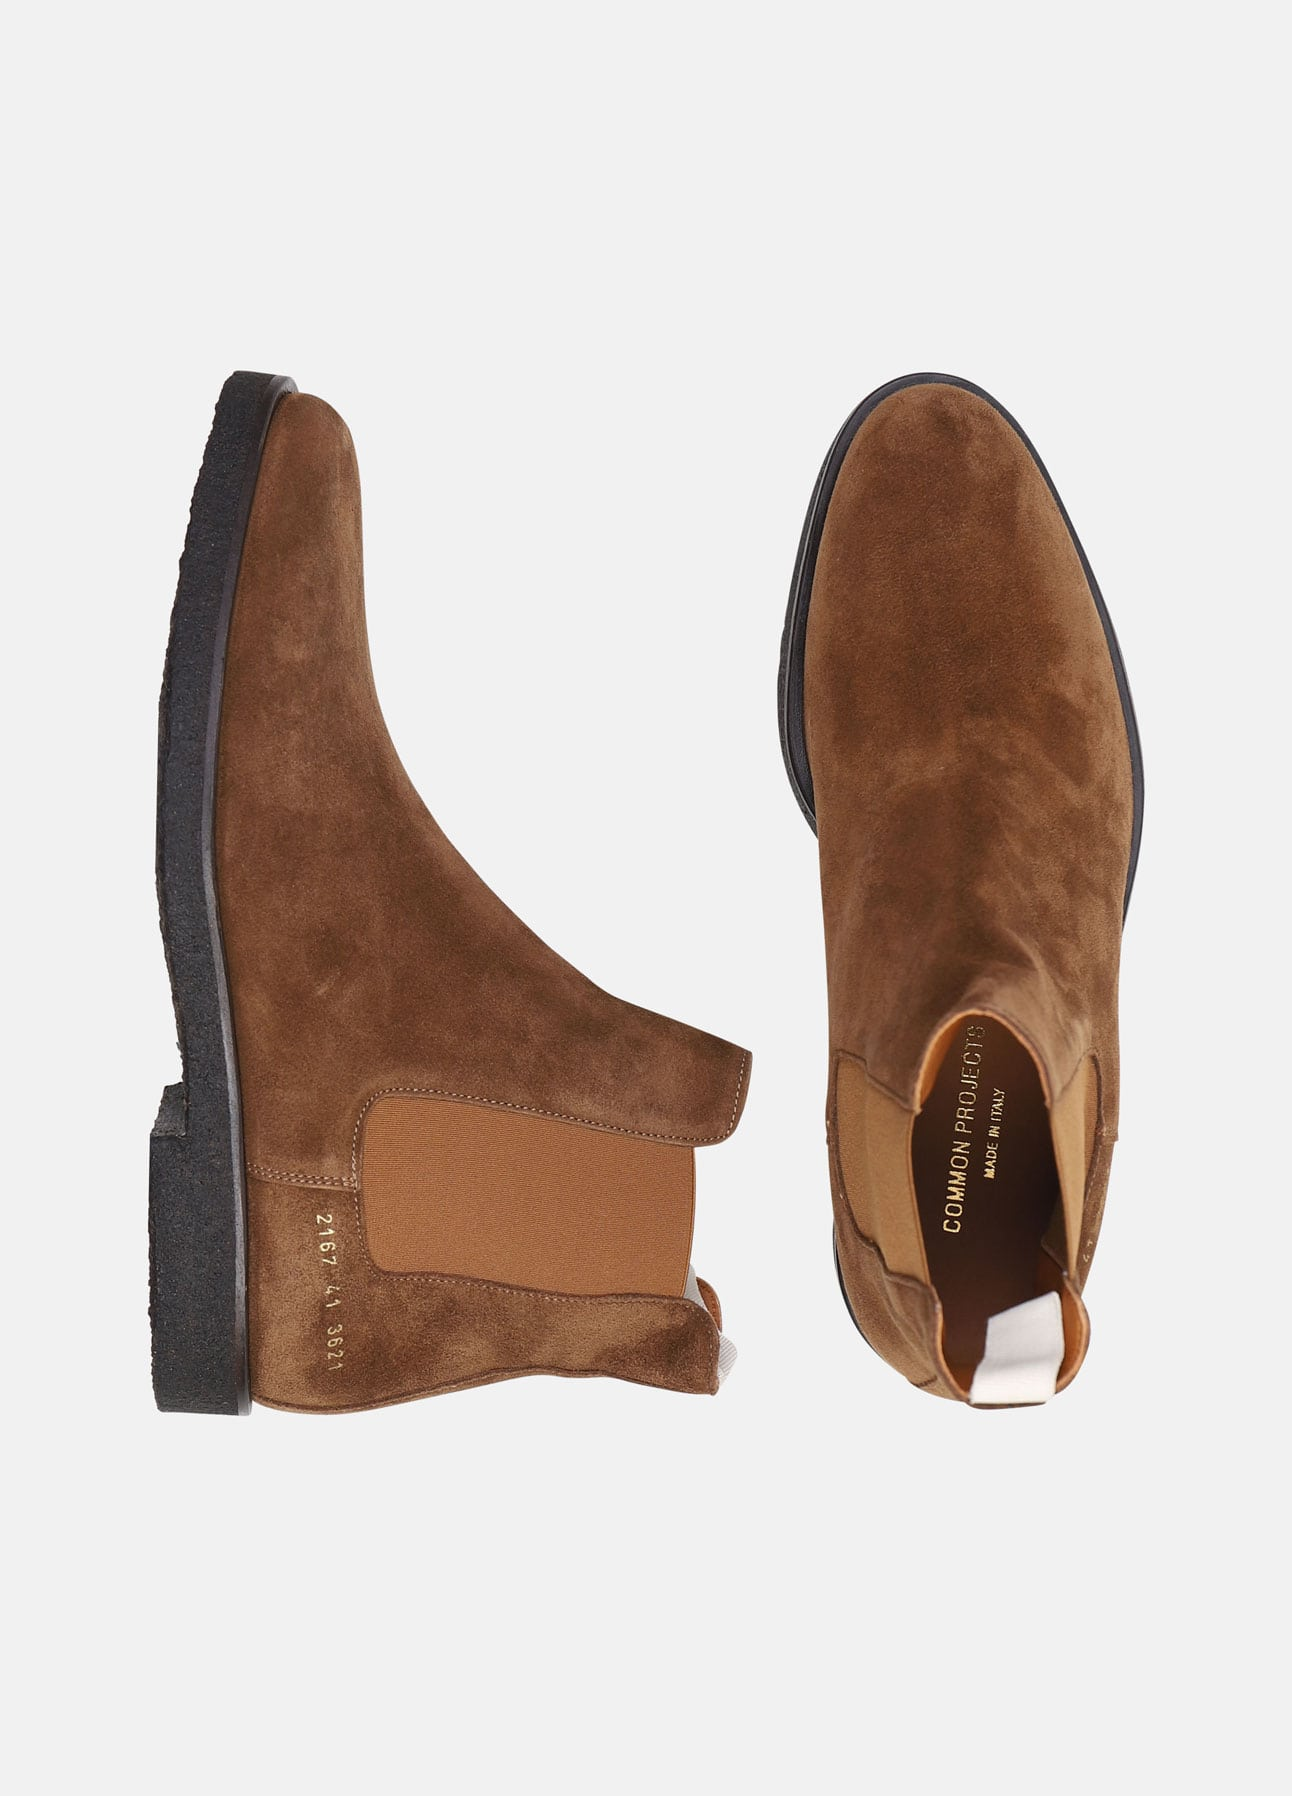 Brun Chelsea boot fra Common Projects